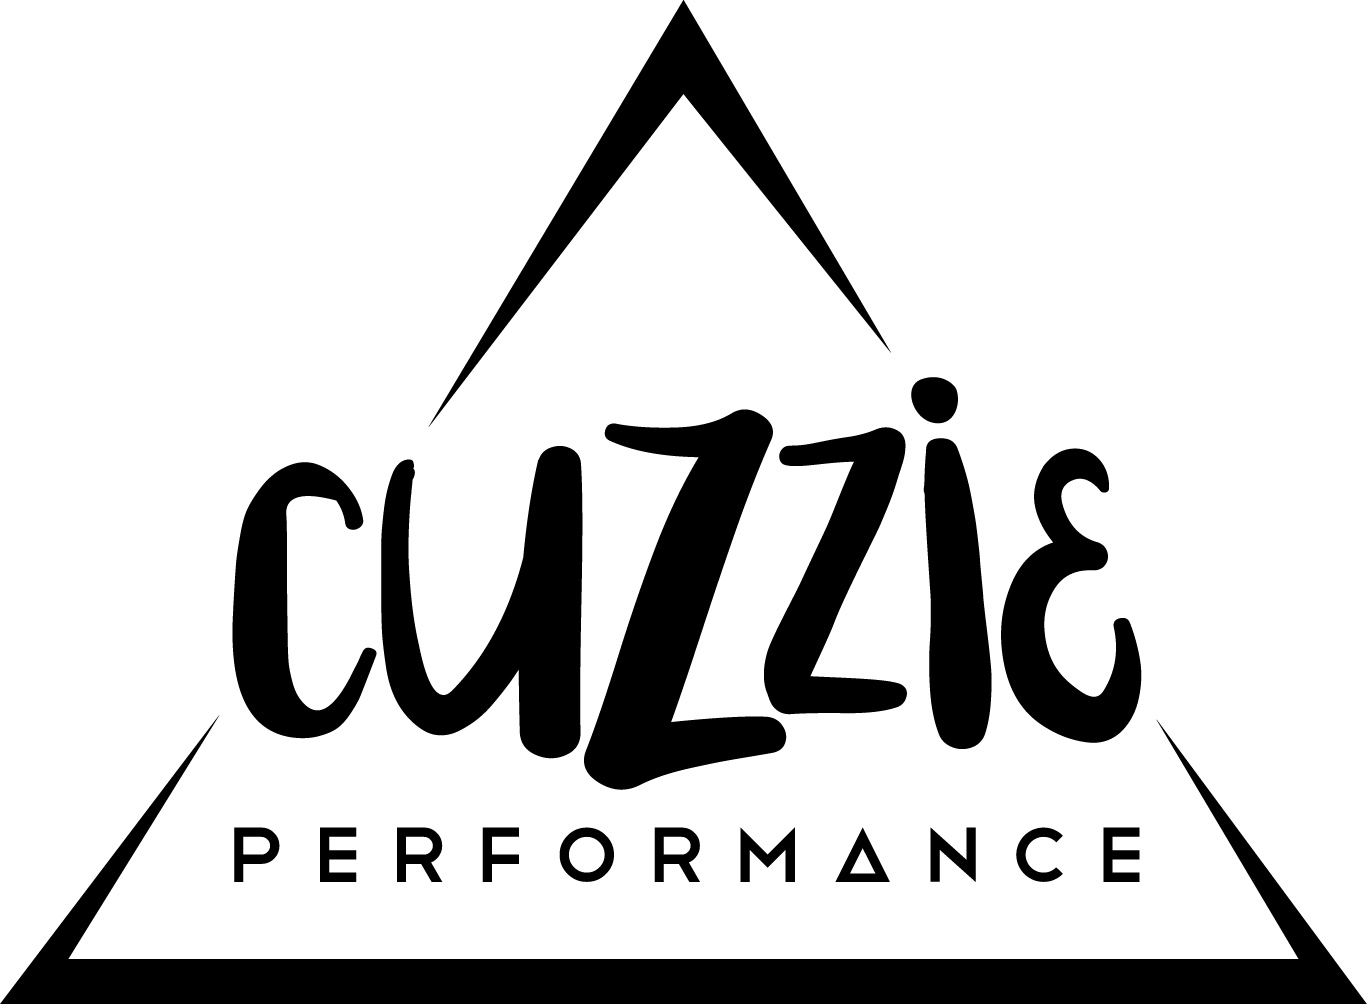 CUZZIE PERFORMANCE